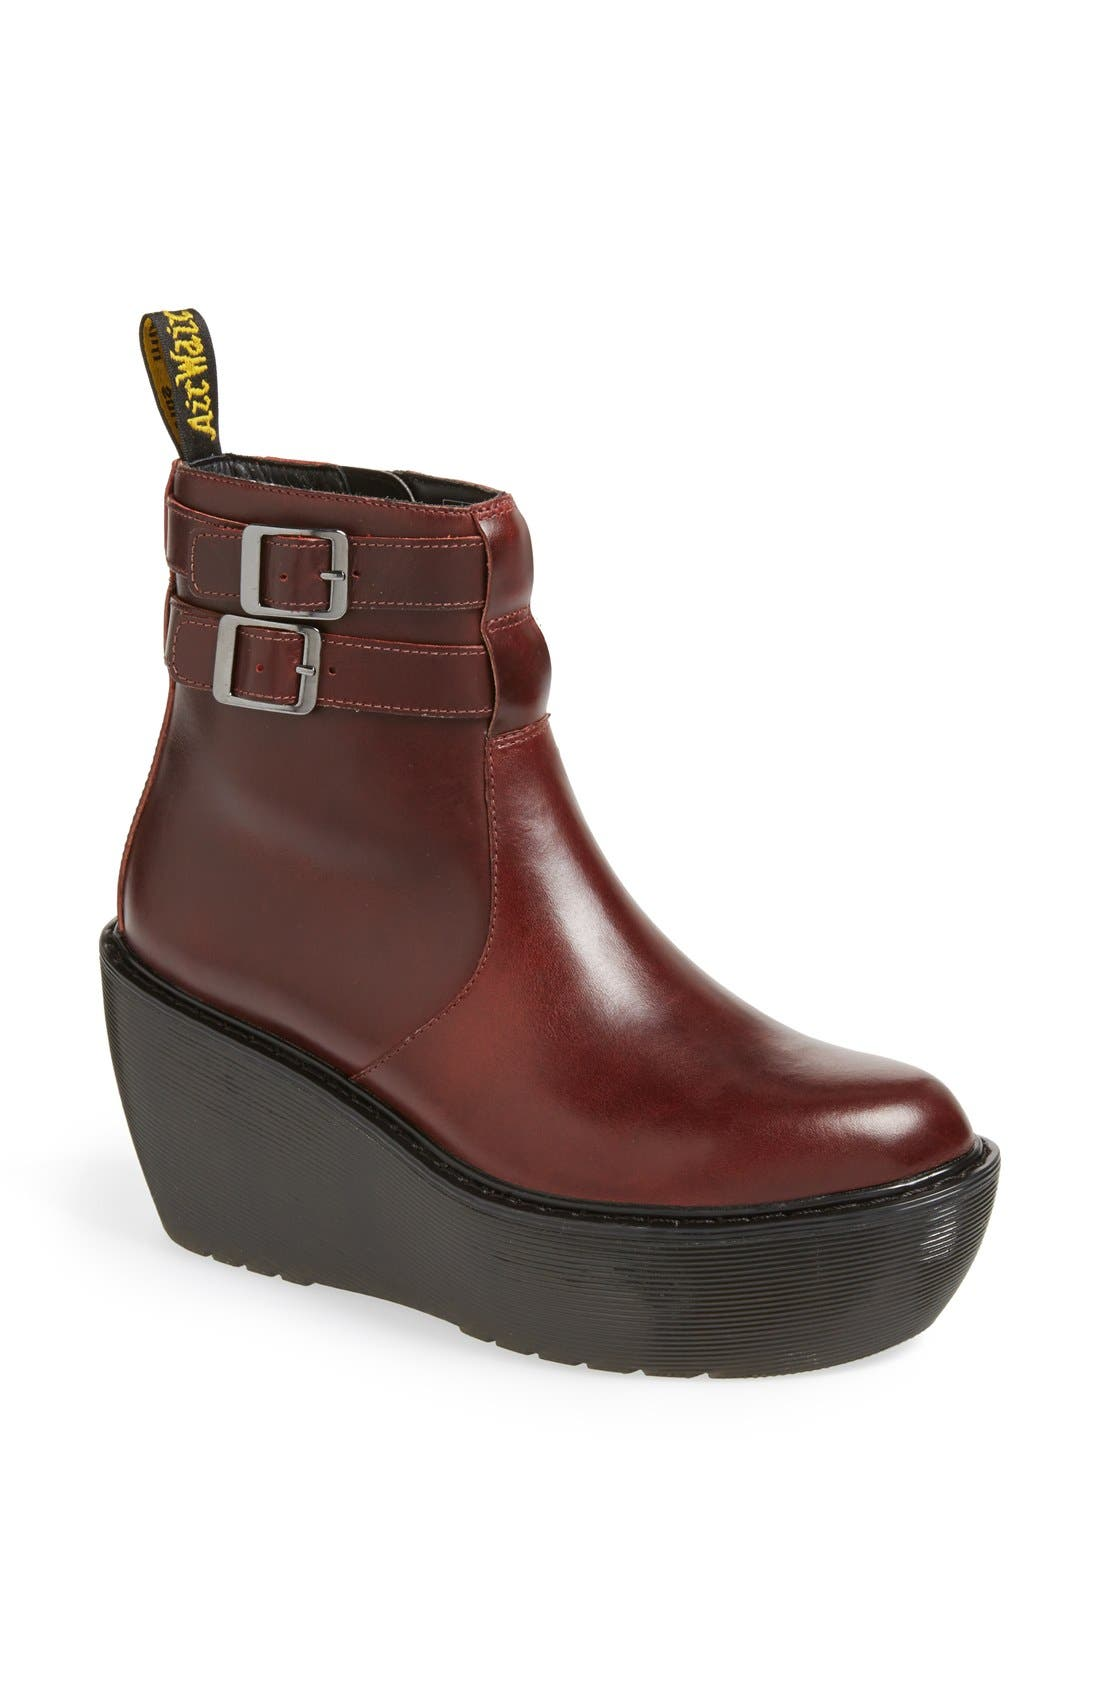 Main Image - Dr. Martens 'Caitlin' Two-Strap Ankle Boot